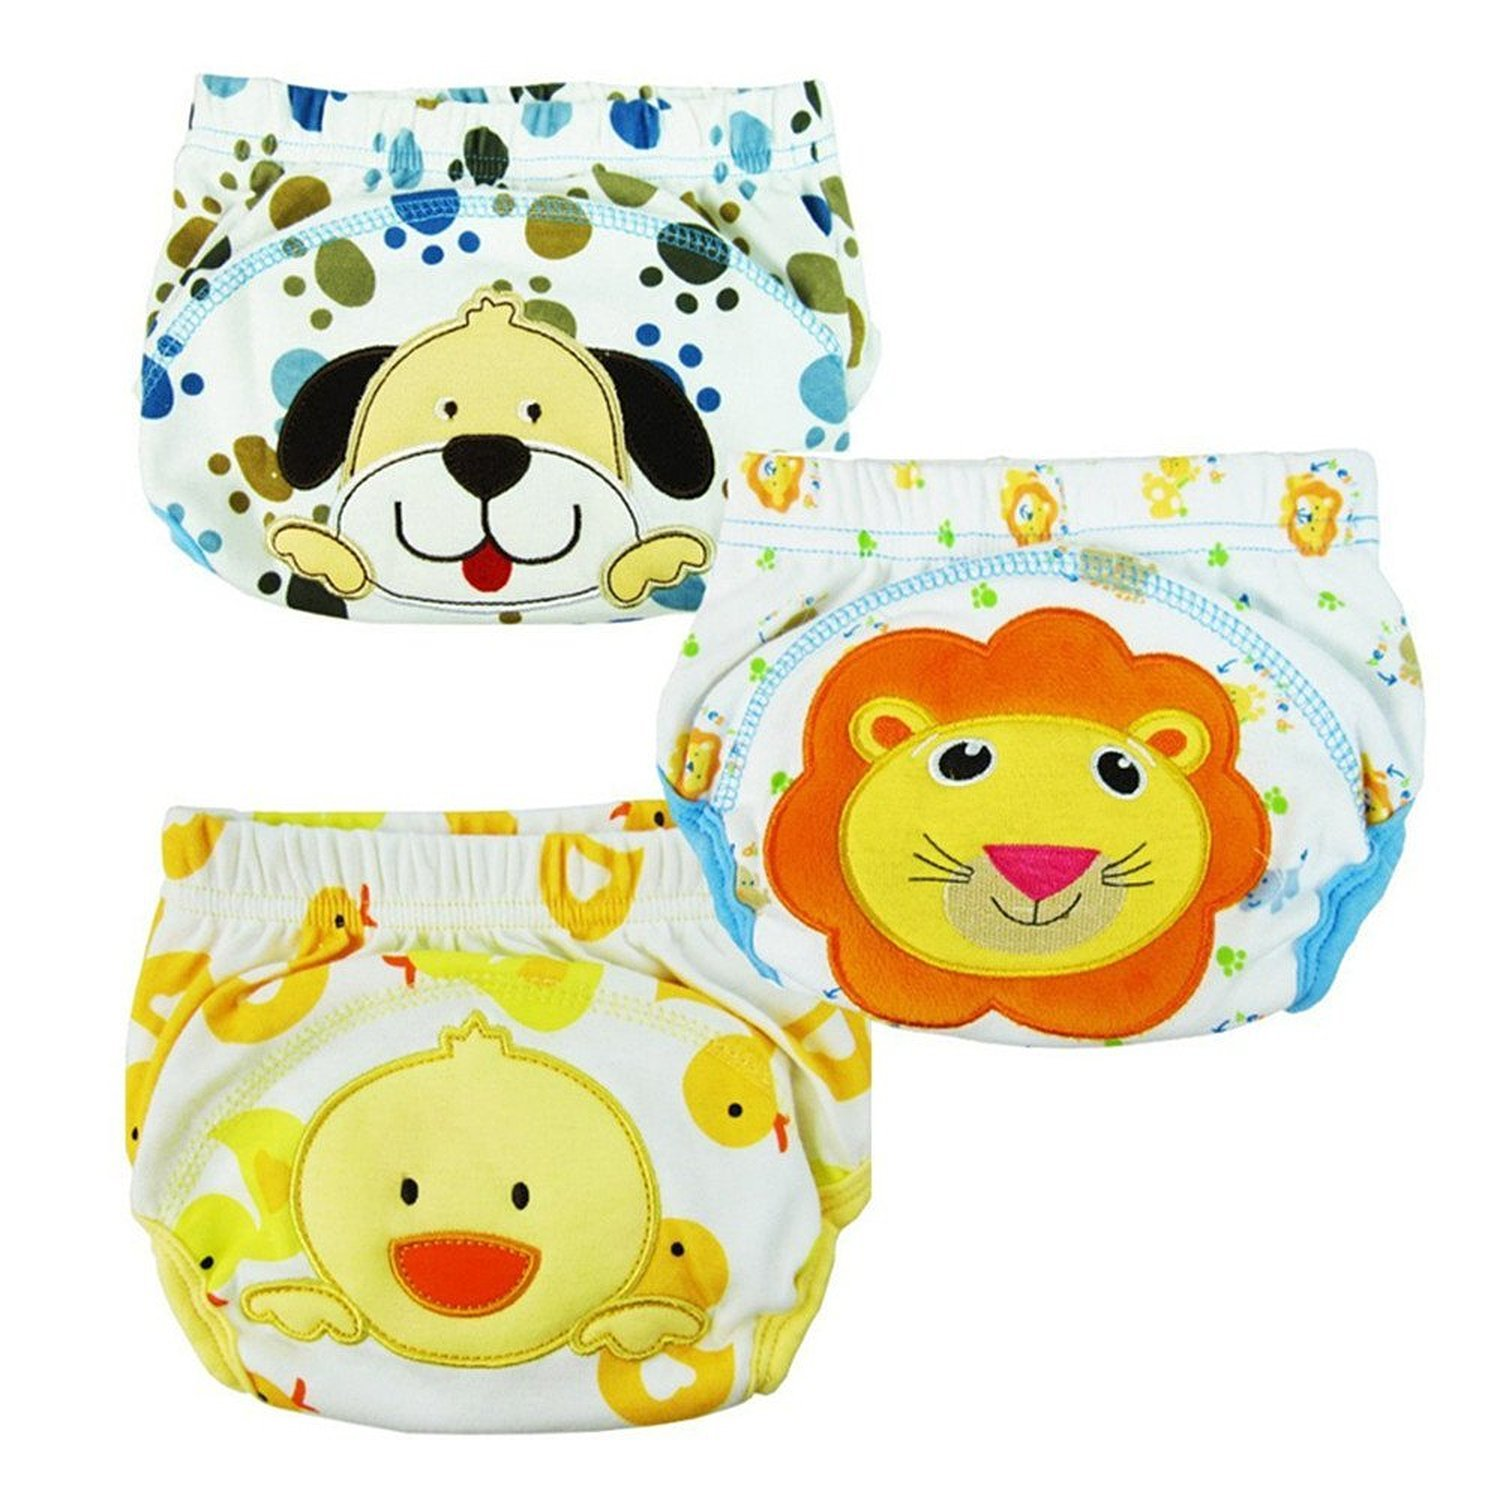 Taiycyxgan 3pcs Baby Kids Potty Training Pants Washable Cloth Diaper Nappy Underwear